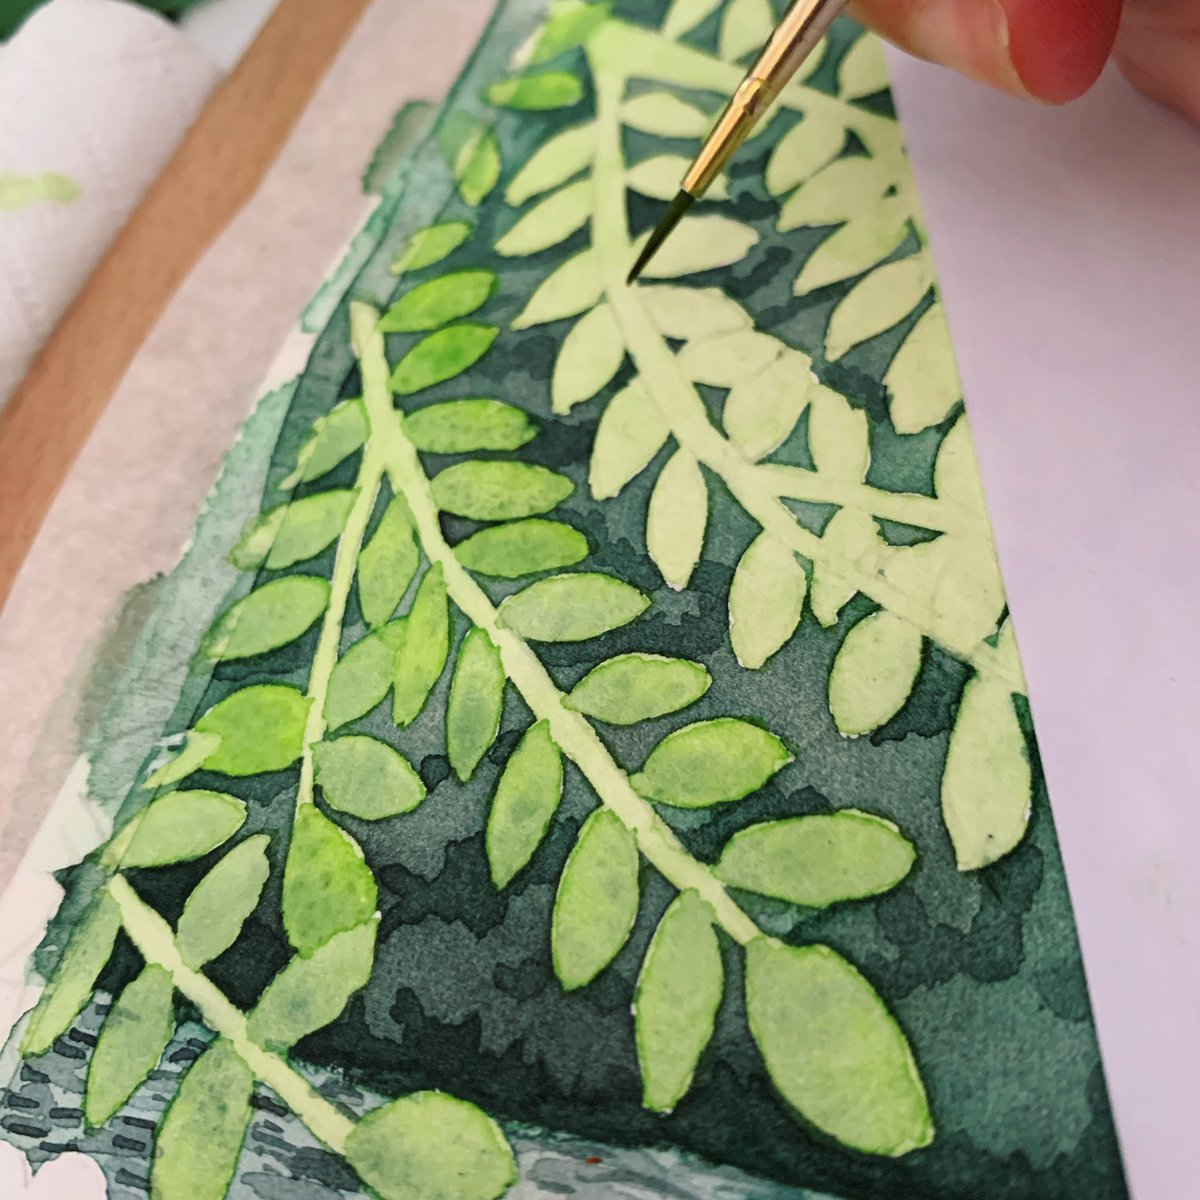 Painting the leaves today  -  #paintingleaves #watercolourleaves #watercolour #paintingscenery #wip #workingprogress #workspace #greenleaves #scenery #greenary #addingdetail #illustration #watercolourartistpic.twitter.com/YfMdiMkfZo